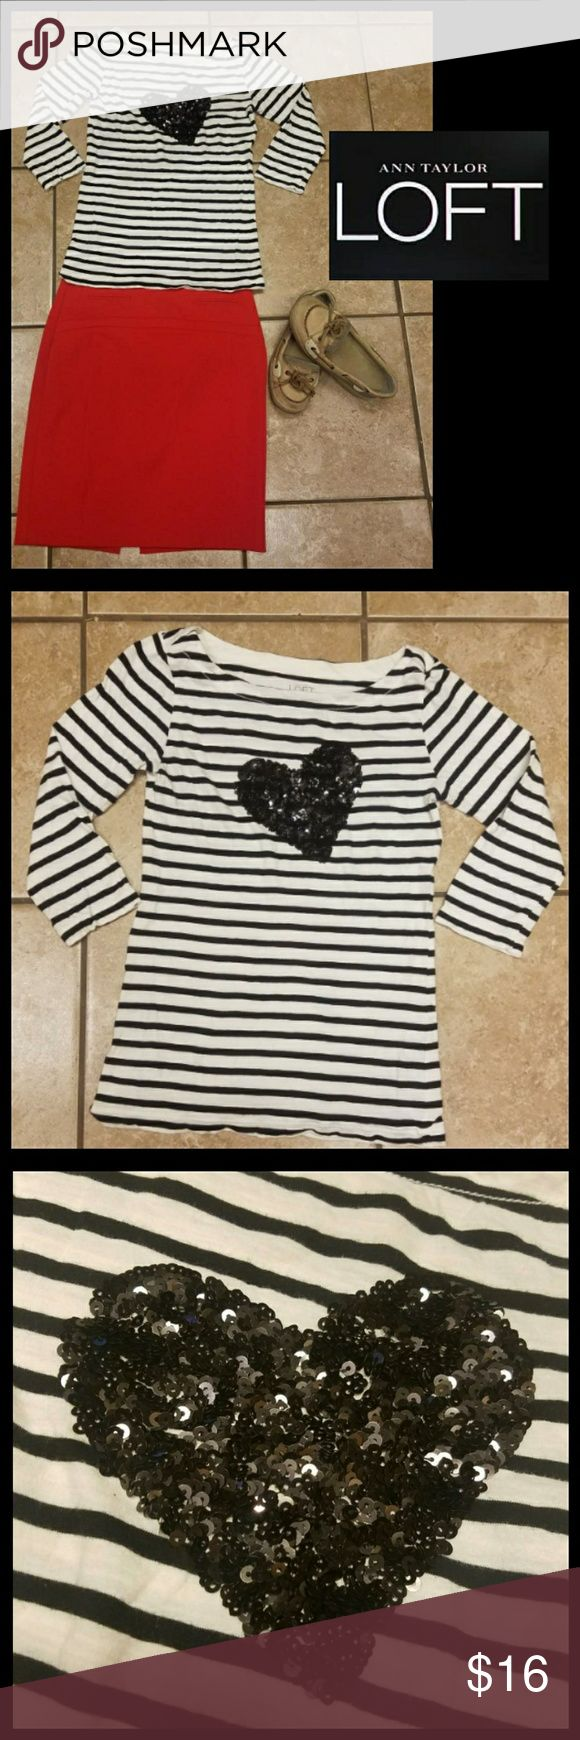 ❤ANNE TAYLOR LOFT~XS❤ Stylish & youthful, this Anne Taylor LOFT top is an easy choice for one's wardrobe.  Size XS. White with black stripes & sequin heart. Elbow length sleeves. A perfect top for autumn. Super soft with lots of stretch. Excellent, preloved condition. Although this is for the top only, the additional items pictured will also be available for purchase in my closet. Be sure to stop in & browse for other great deals on name brands and bundle to save even more.  God bless! LOFT…